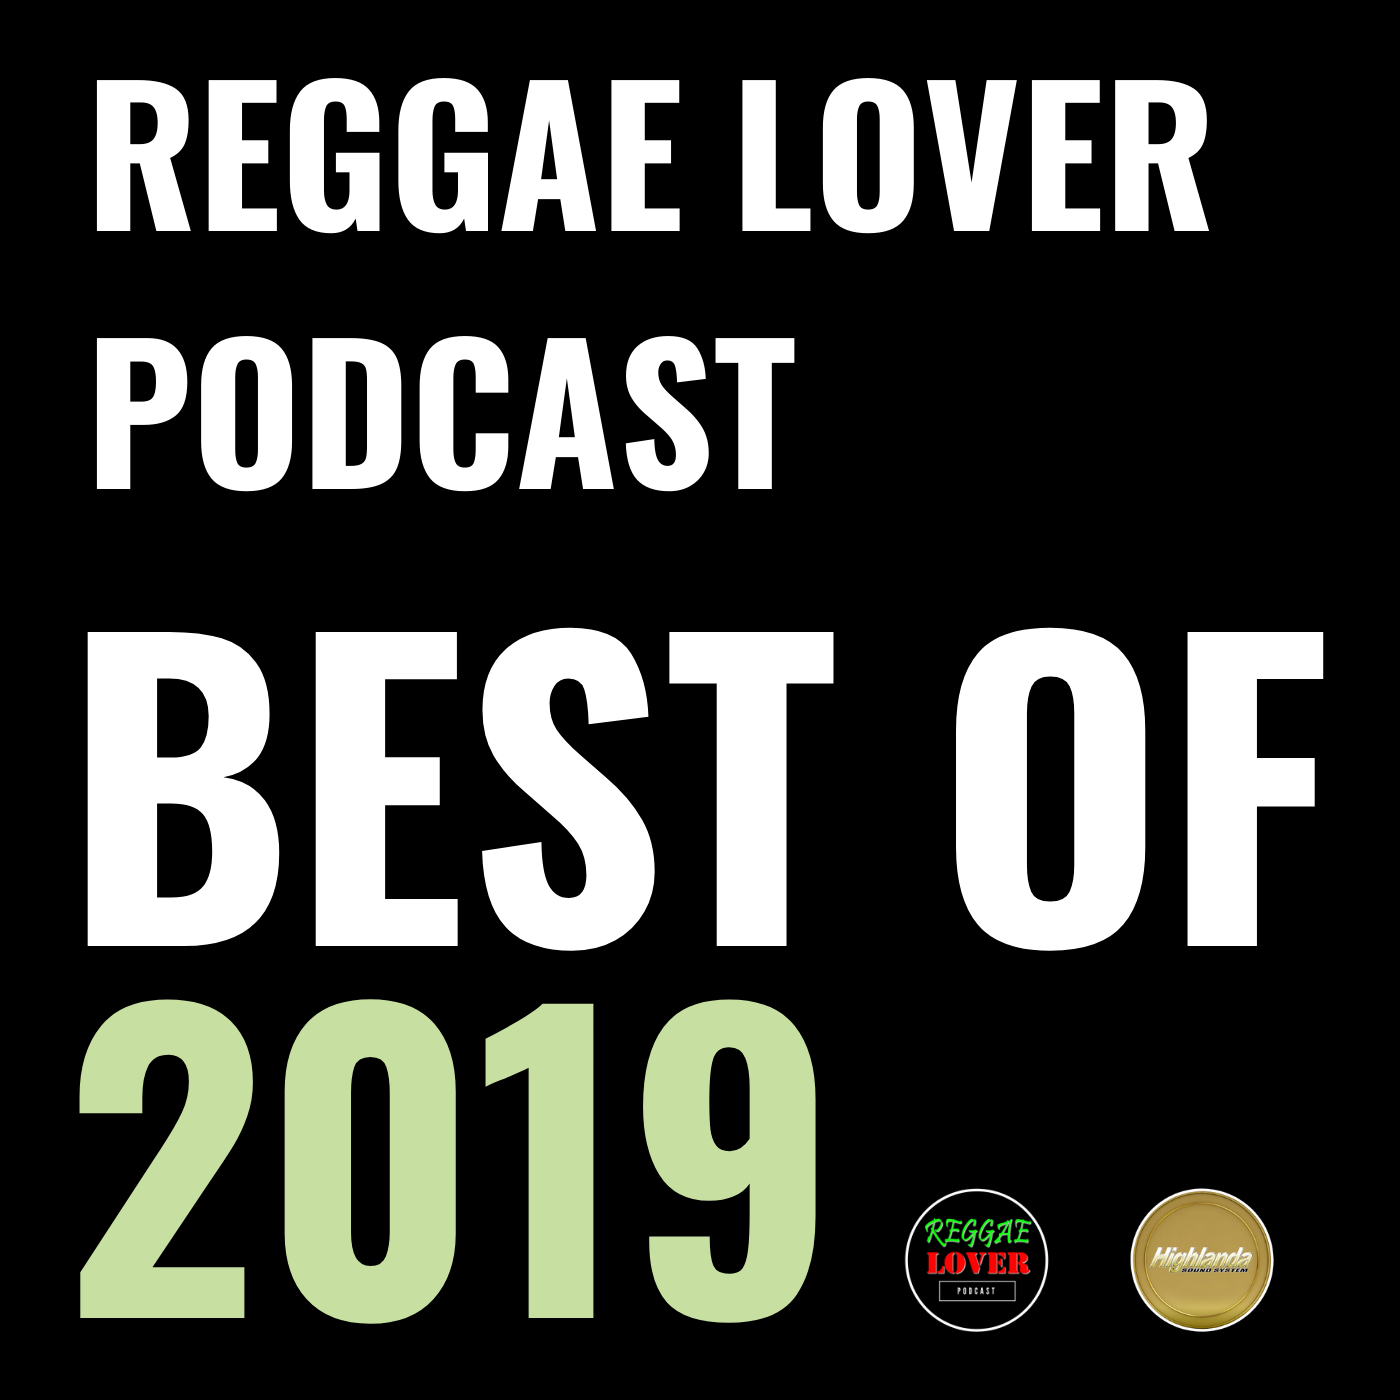 Podcast cover image: reggae lover